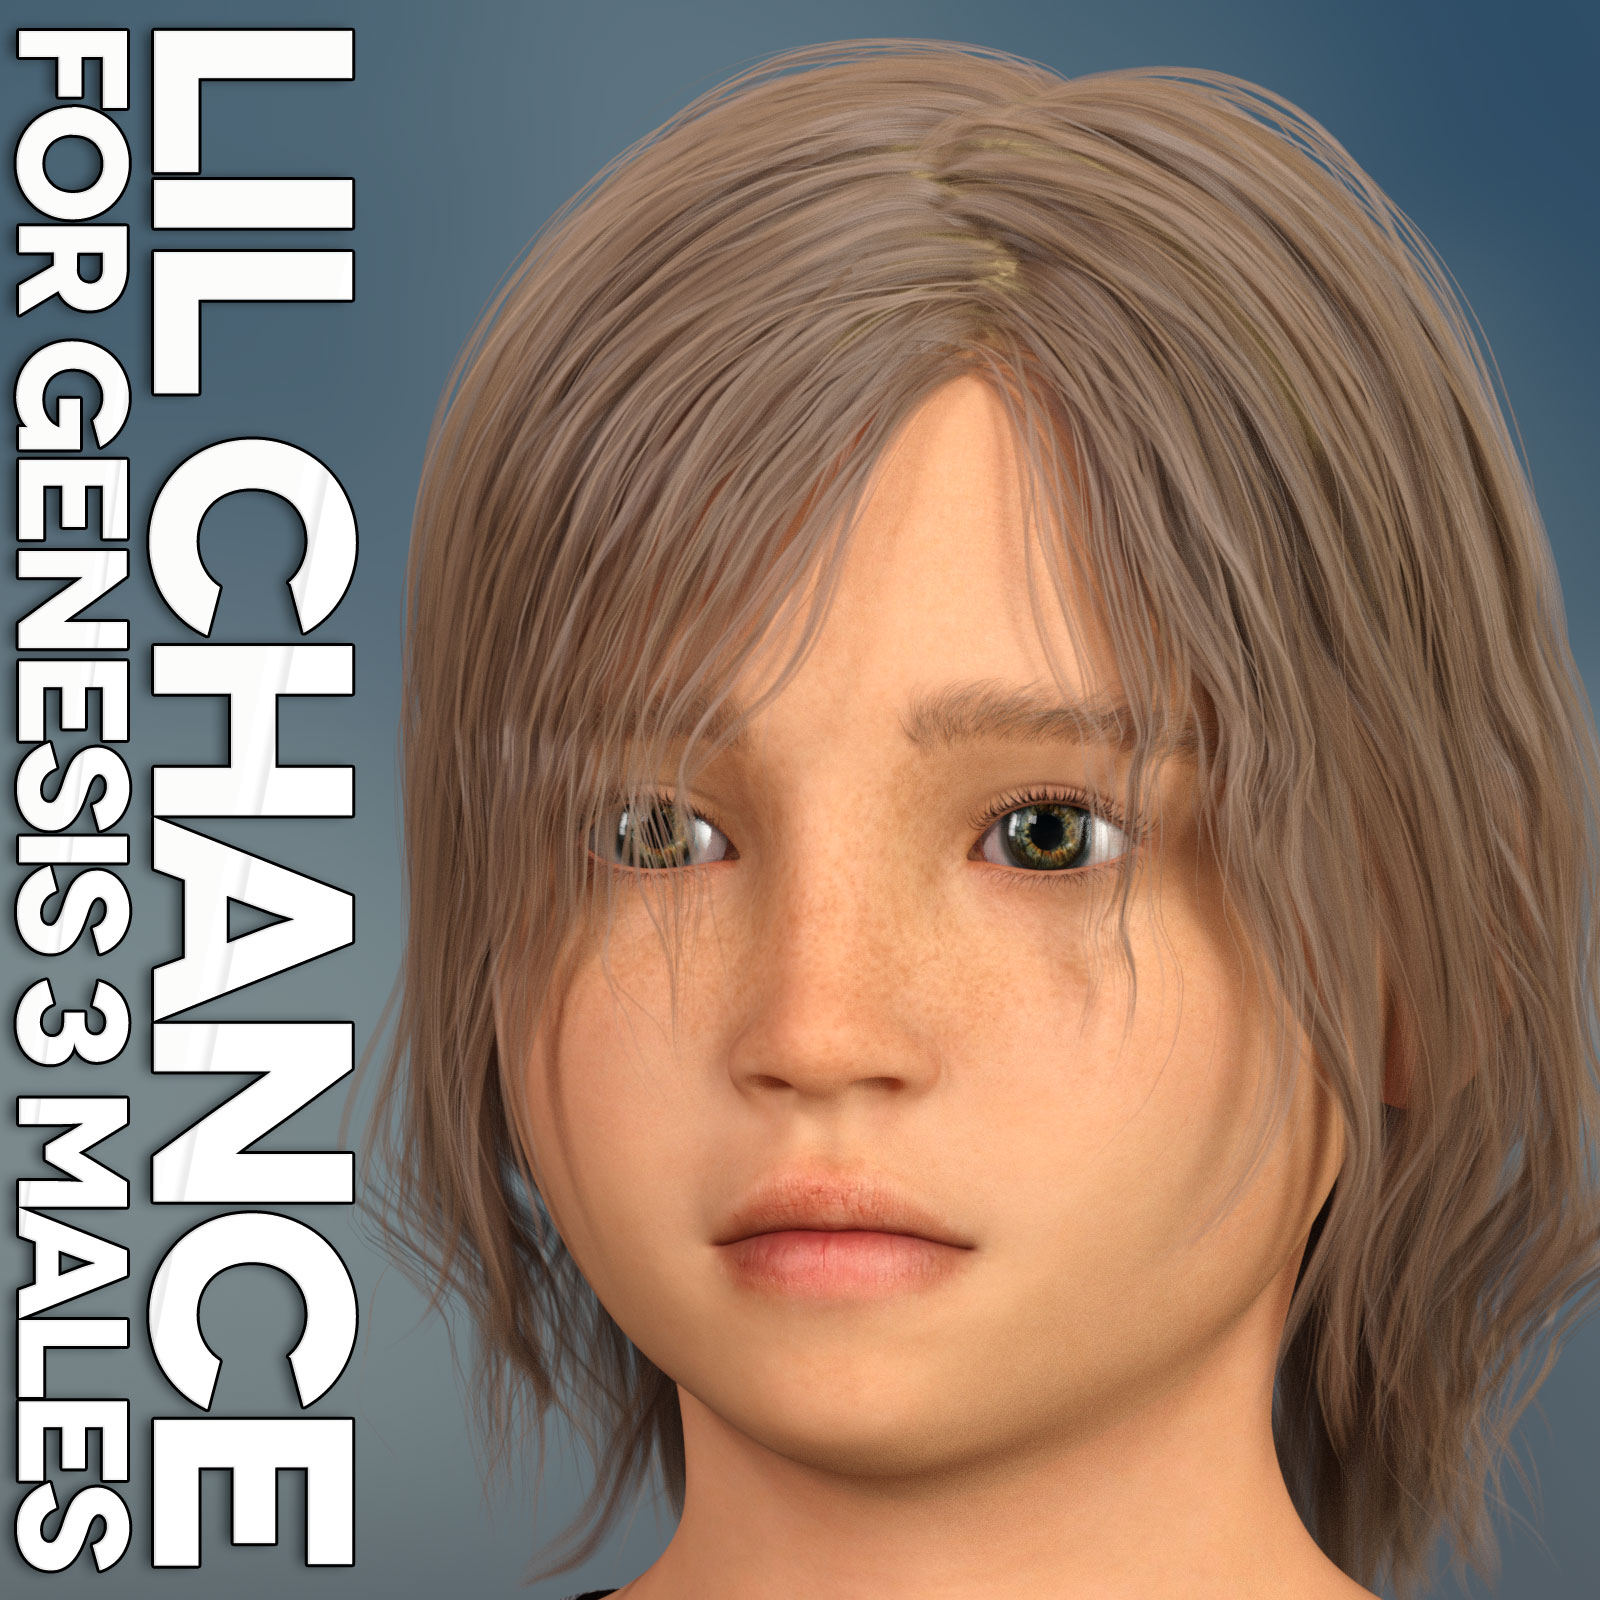 Lil Chance for Genesis 3 Males by 3DLoki